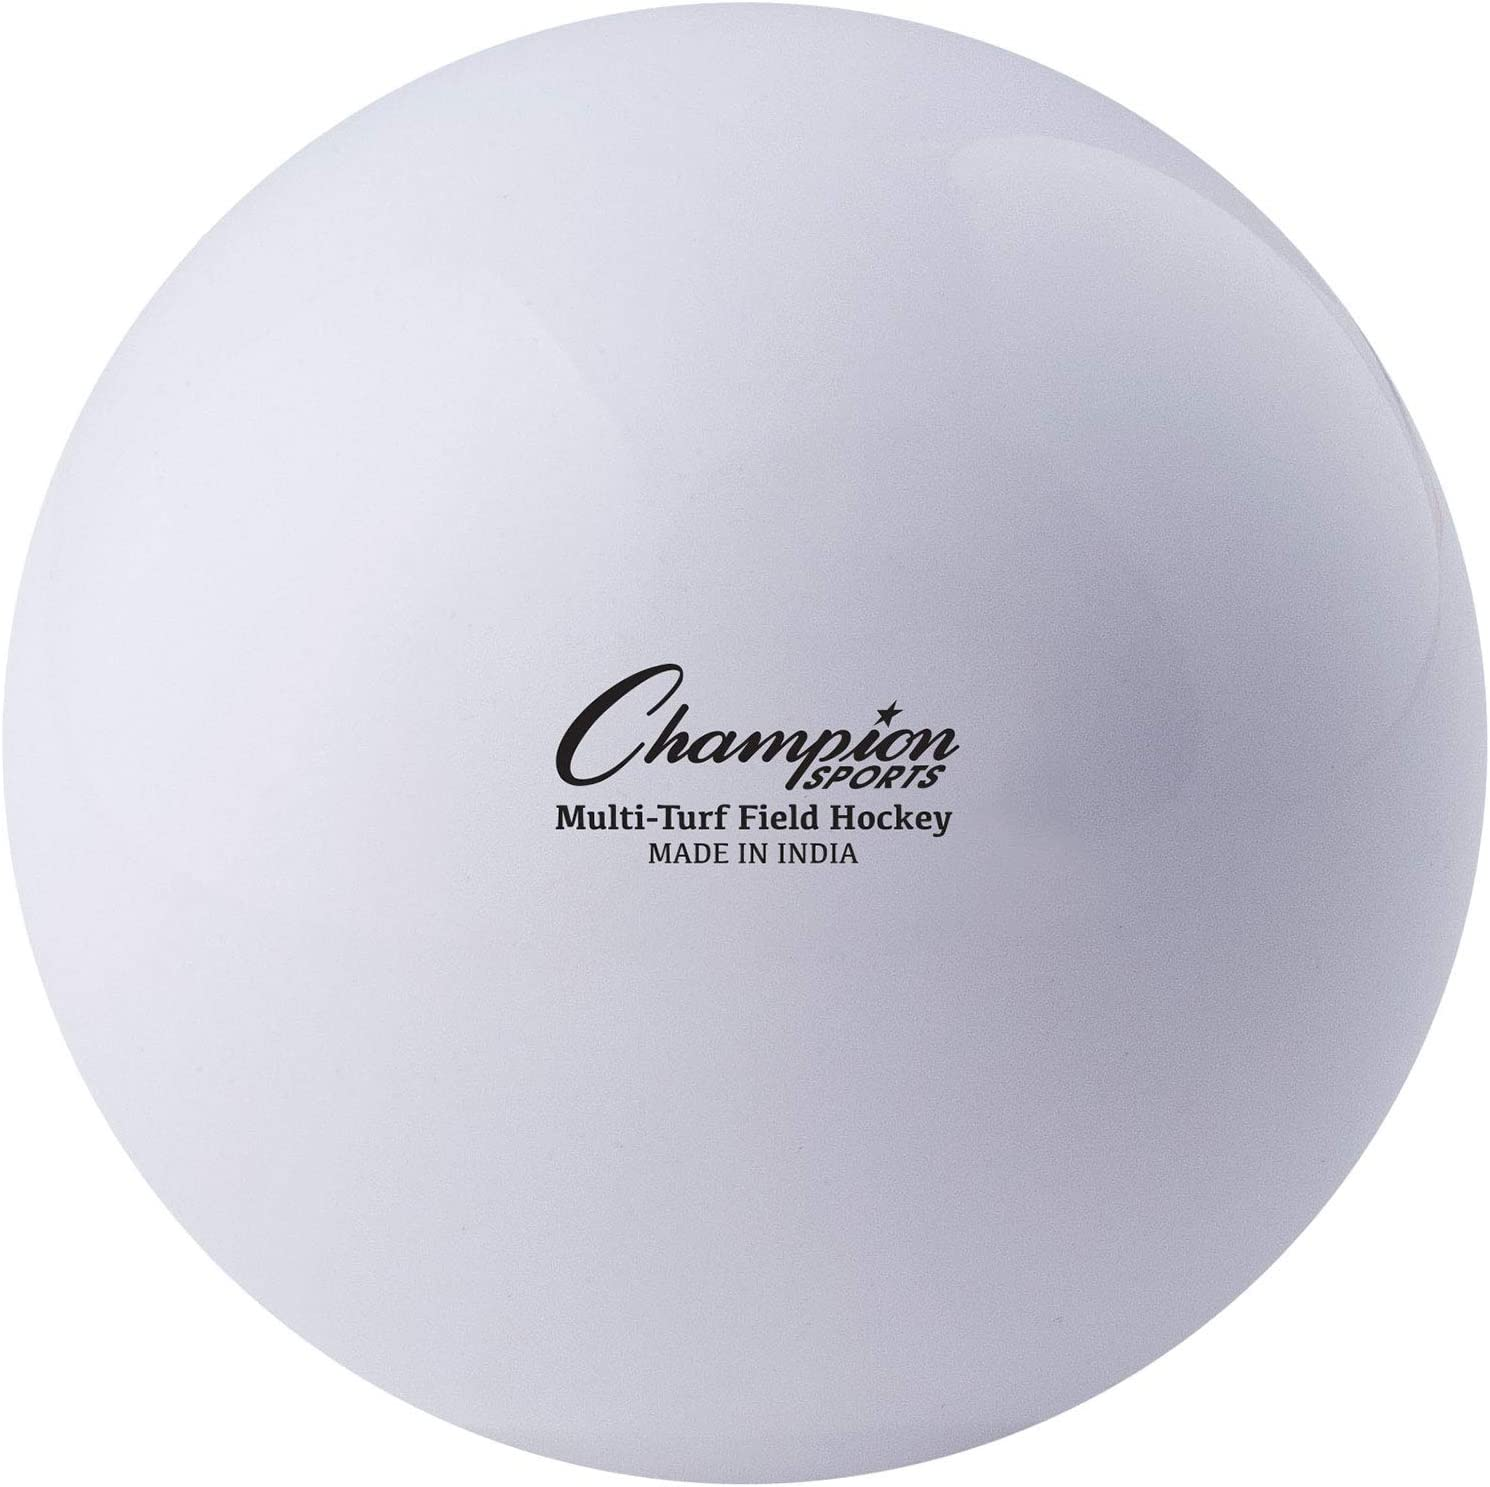 """Champion Sports Field Hockey Balls, Regulation Size, 12-Pack, 2.75"""" Each - Sports Practice Hockey Ball Set for Fields, Grass, Turf - Durable, Bouncy, Lightweight, Bright Colored - White : Sports & Outdoors"""